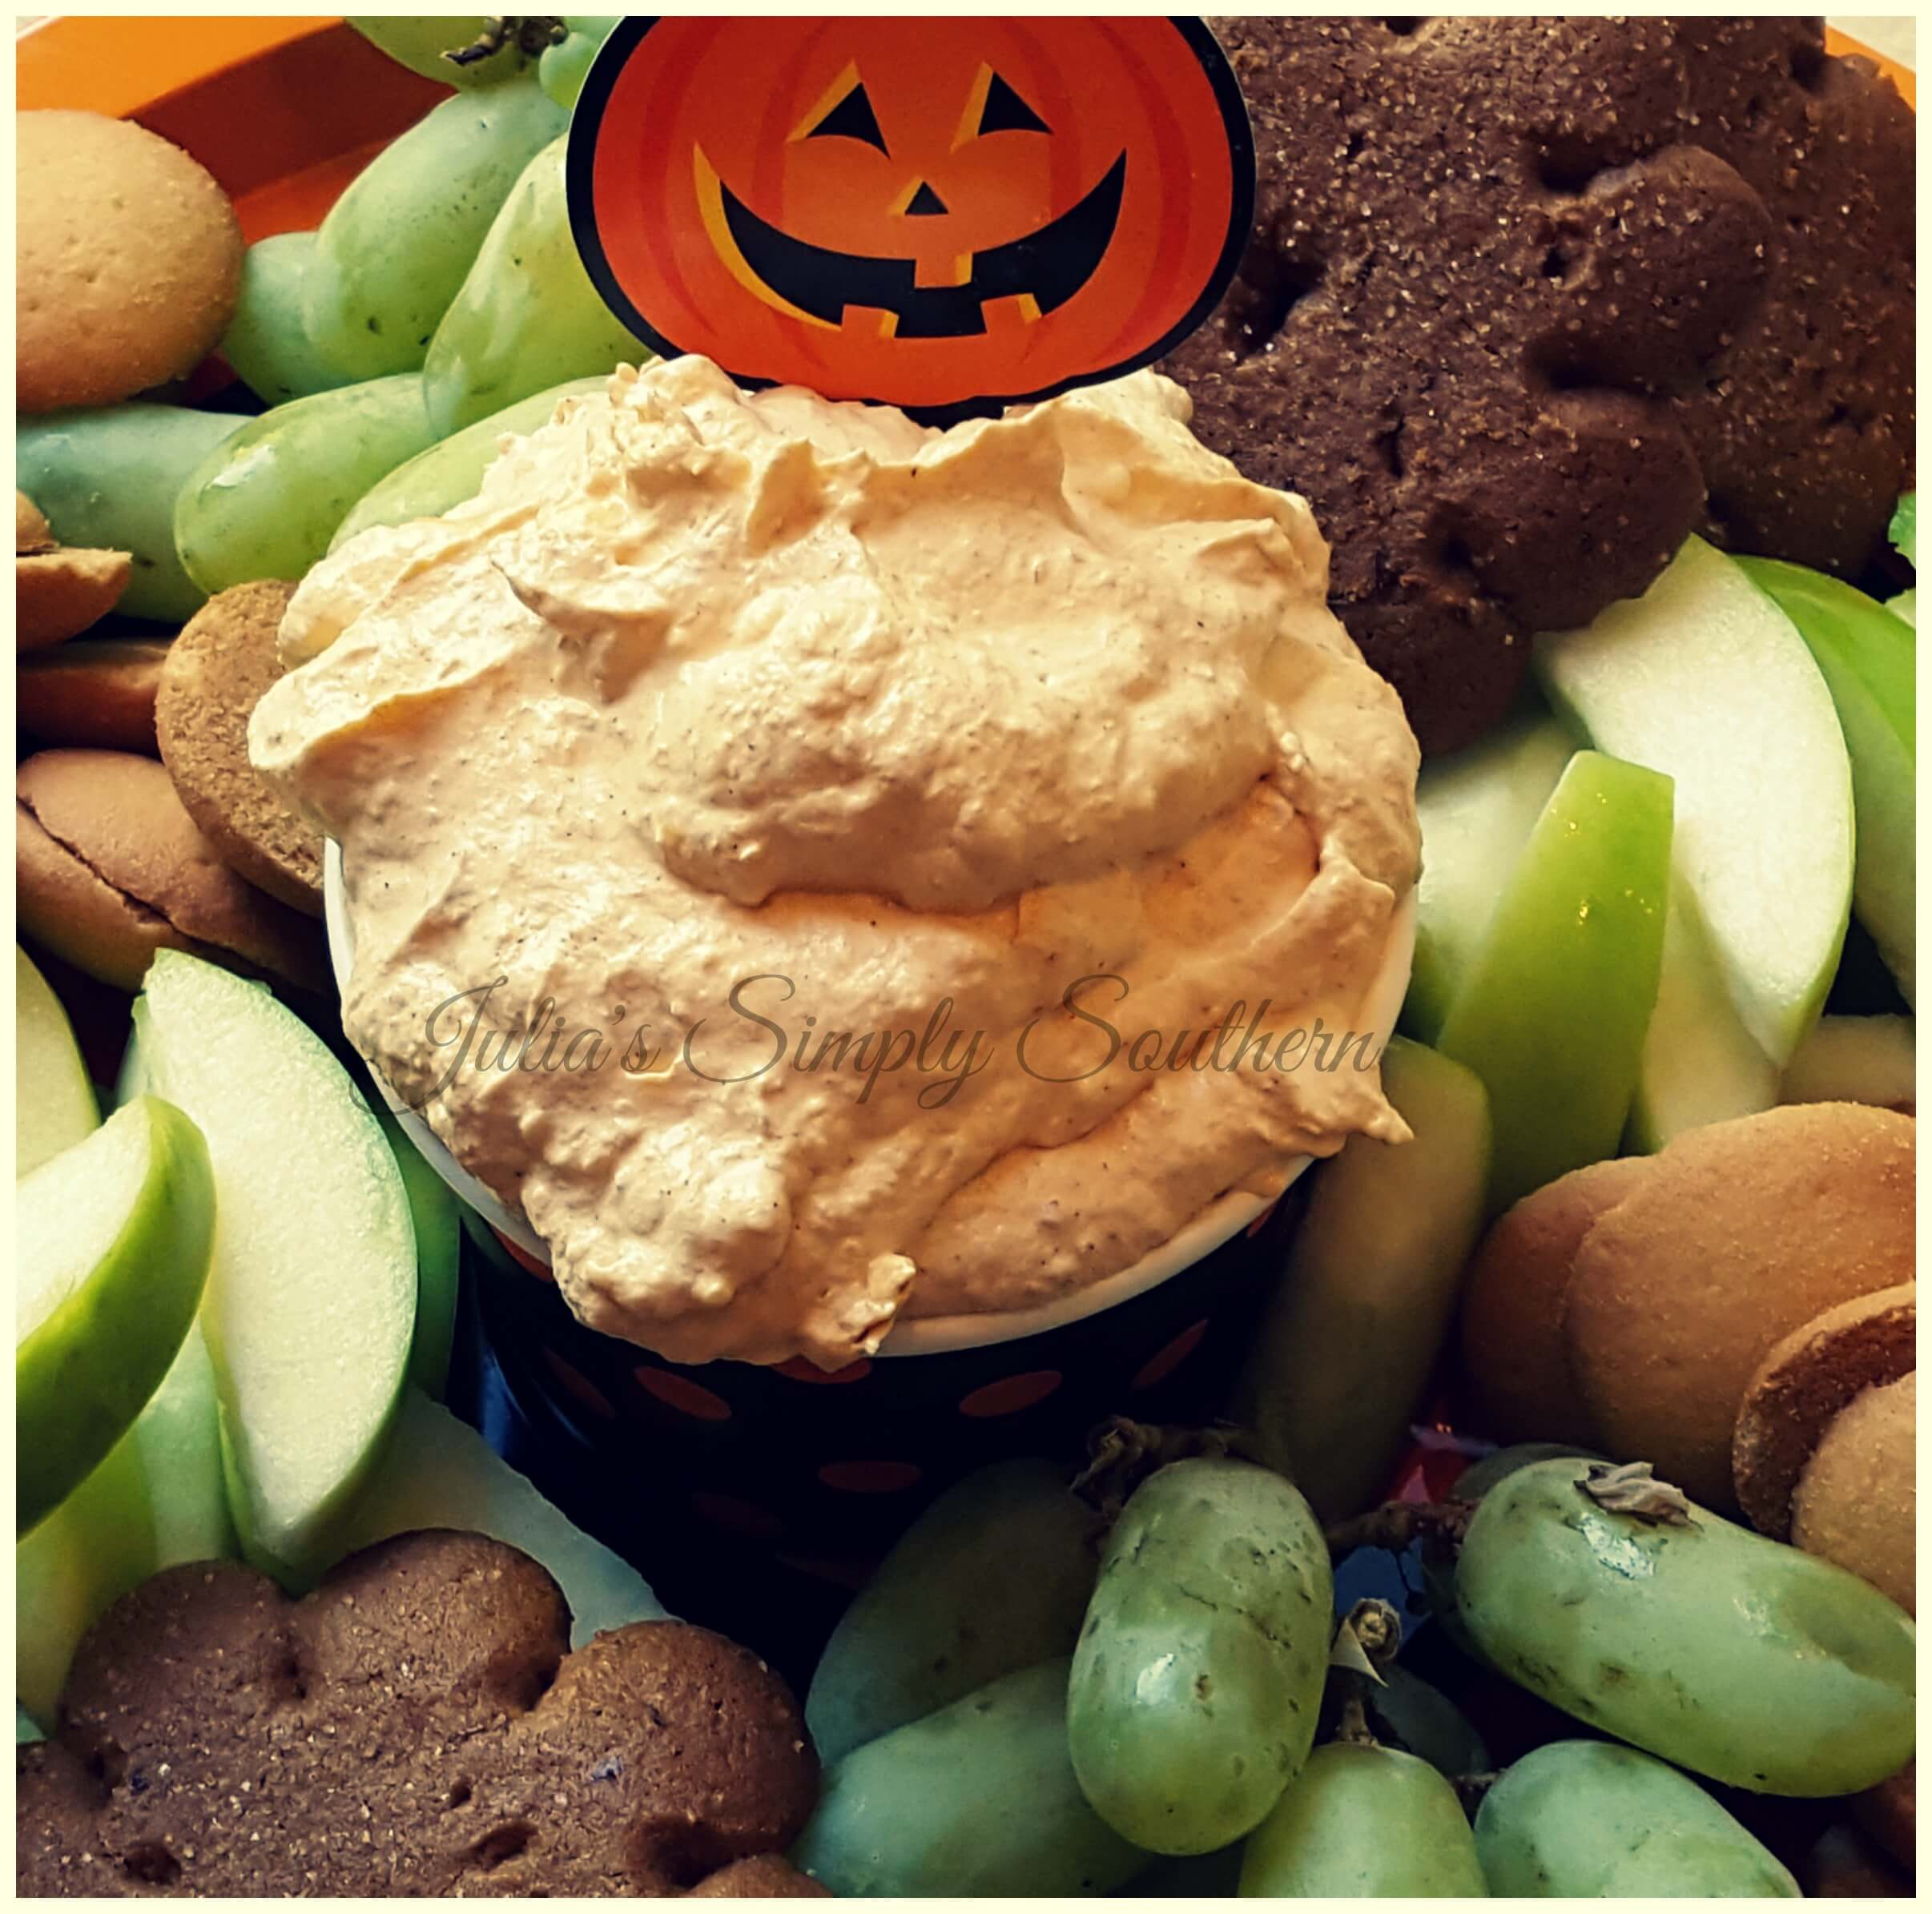 pumpkin fluff party dip with fruit tray